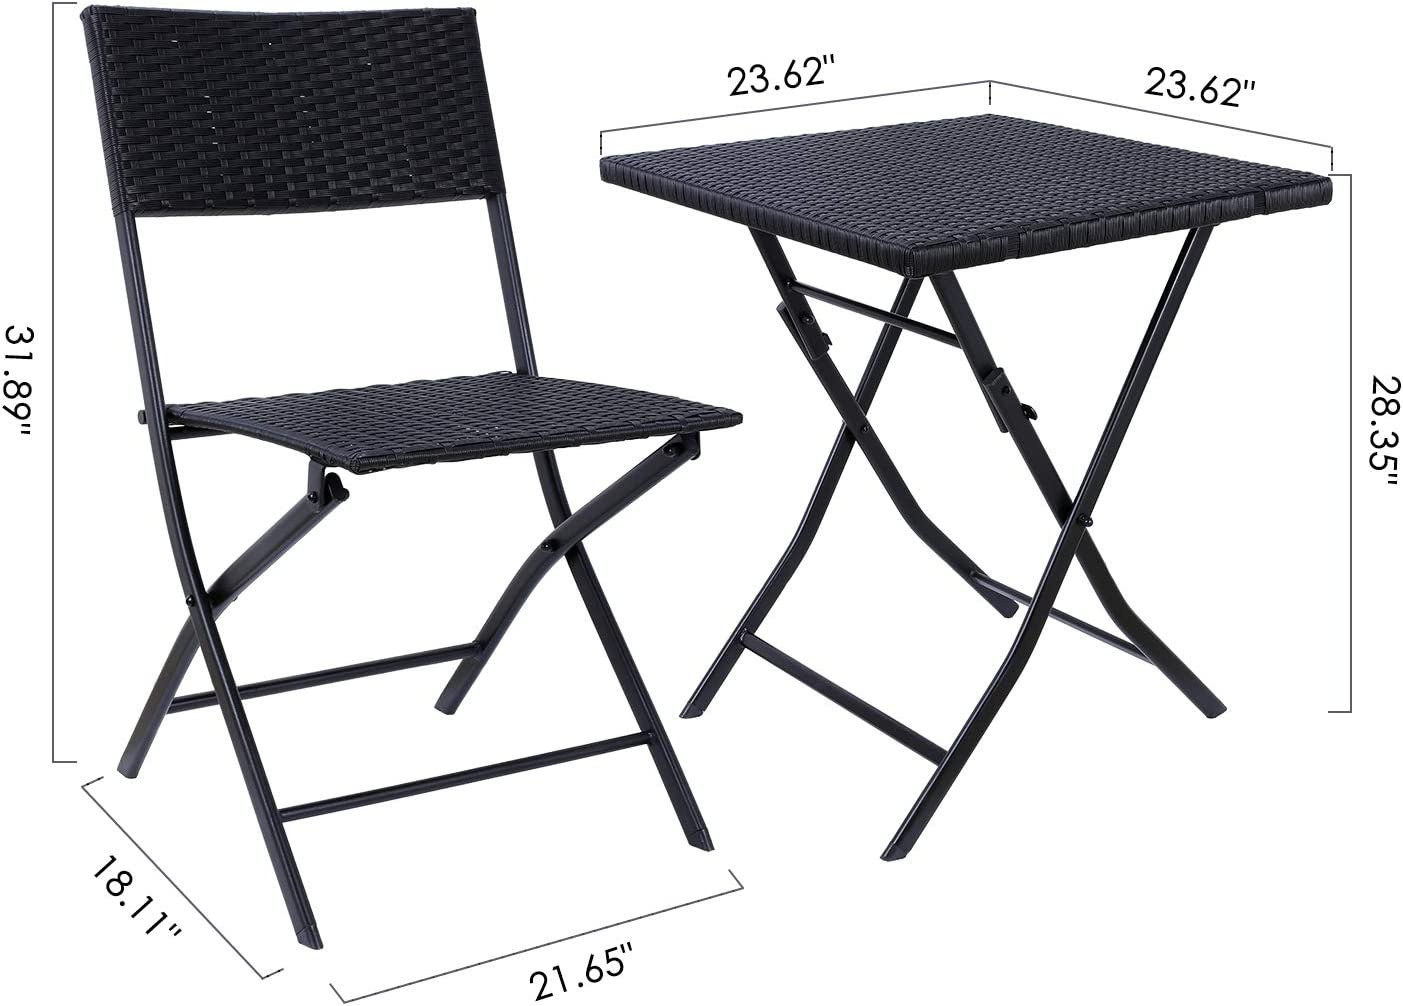 GARTIO 3Pcs Patio Rattan Bistro Set, Foldable Table and Chairs Outdoor Waterproof Hand Woven Furniture, with Rust-Proof Steel Frames, Suit for Balcony and Garden, Backyard and Porch